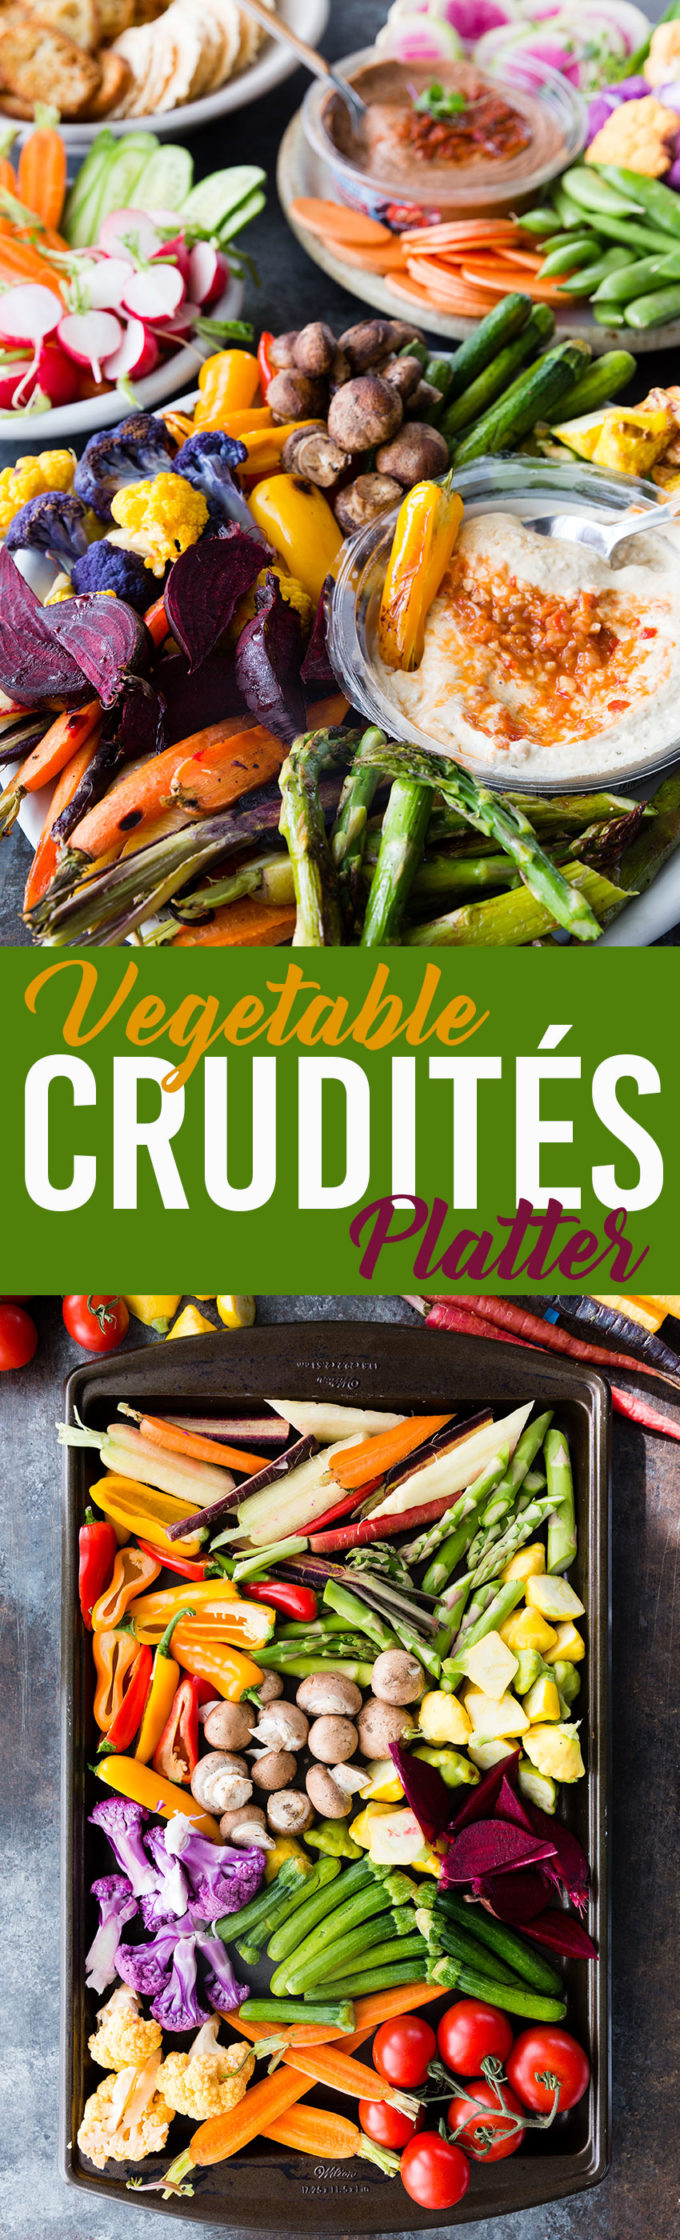 Vegetable Crudites Platter with raw and roasted vegetables and bean dip